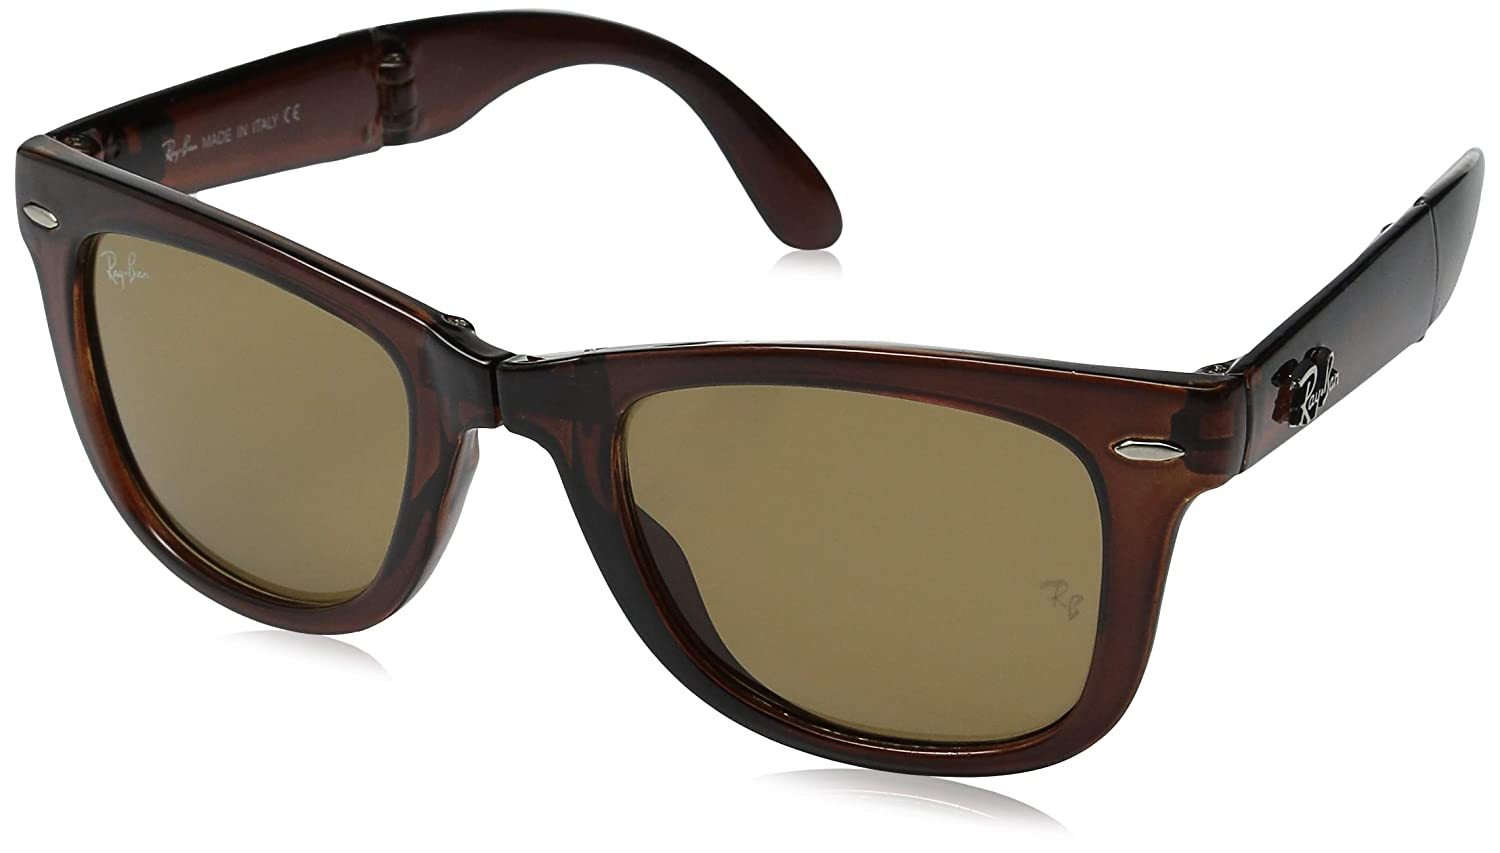 9895e4437426a Amazon.com  Ray-Ban RB4105 Folding Wayfarer Sunglasses  Clothing